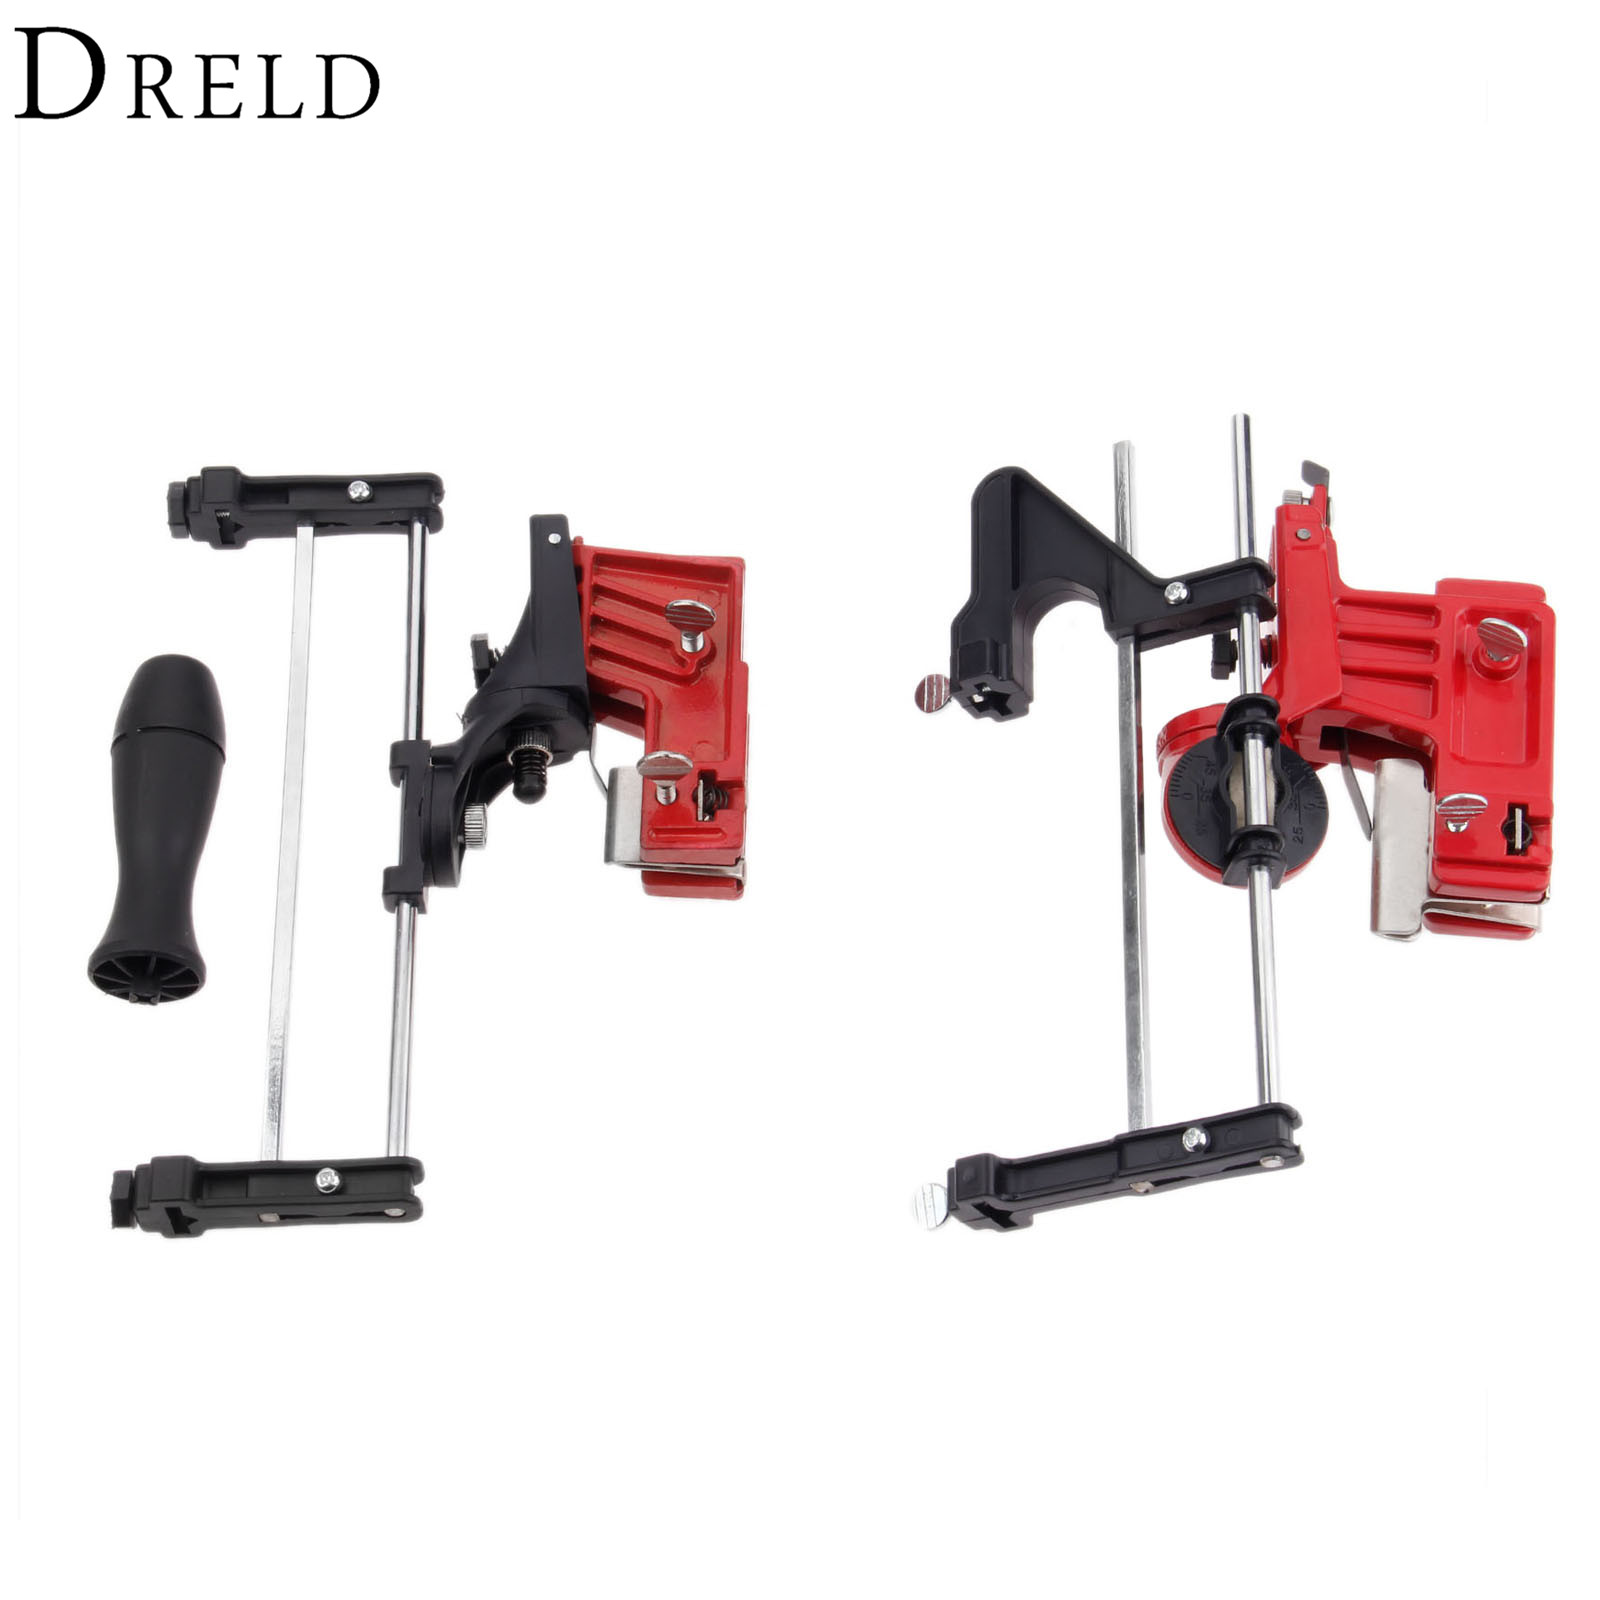 DRELD Universal Pro Lawn Mower Chainsaw Chain File Guide Sharpener Grinding Guide for Chainsaw Sharpener Garden Tools Parts